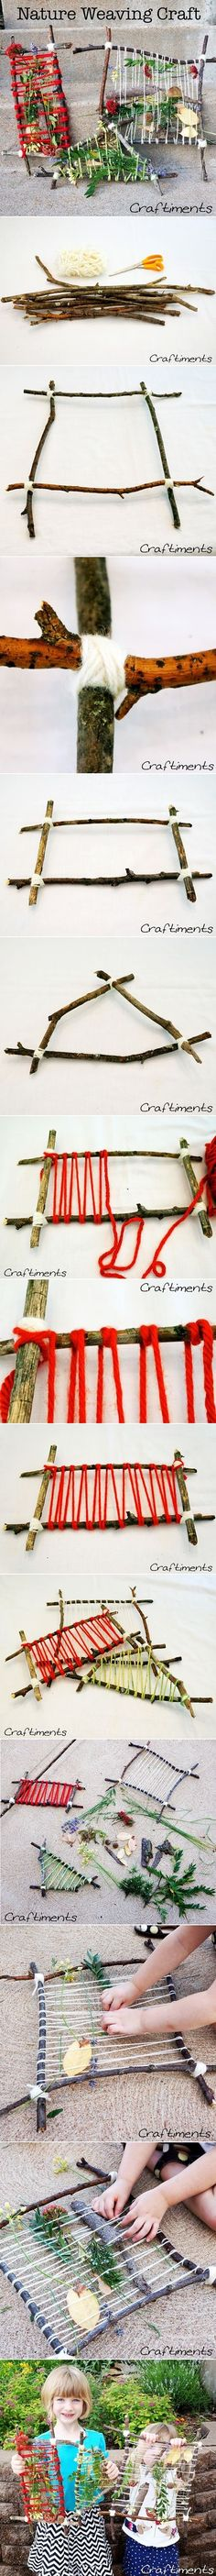 How to make DIY natural weaving loom, step by step tutorial / instructions Weben mit Naturmaterialien Theme Nature, Deco Nature, Best Summer Camps, Summer Fun, Crafts For Kids, Arts And Crafts, Weaving Projects, Camping Crafts, How To Make Diy